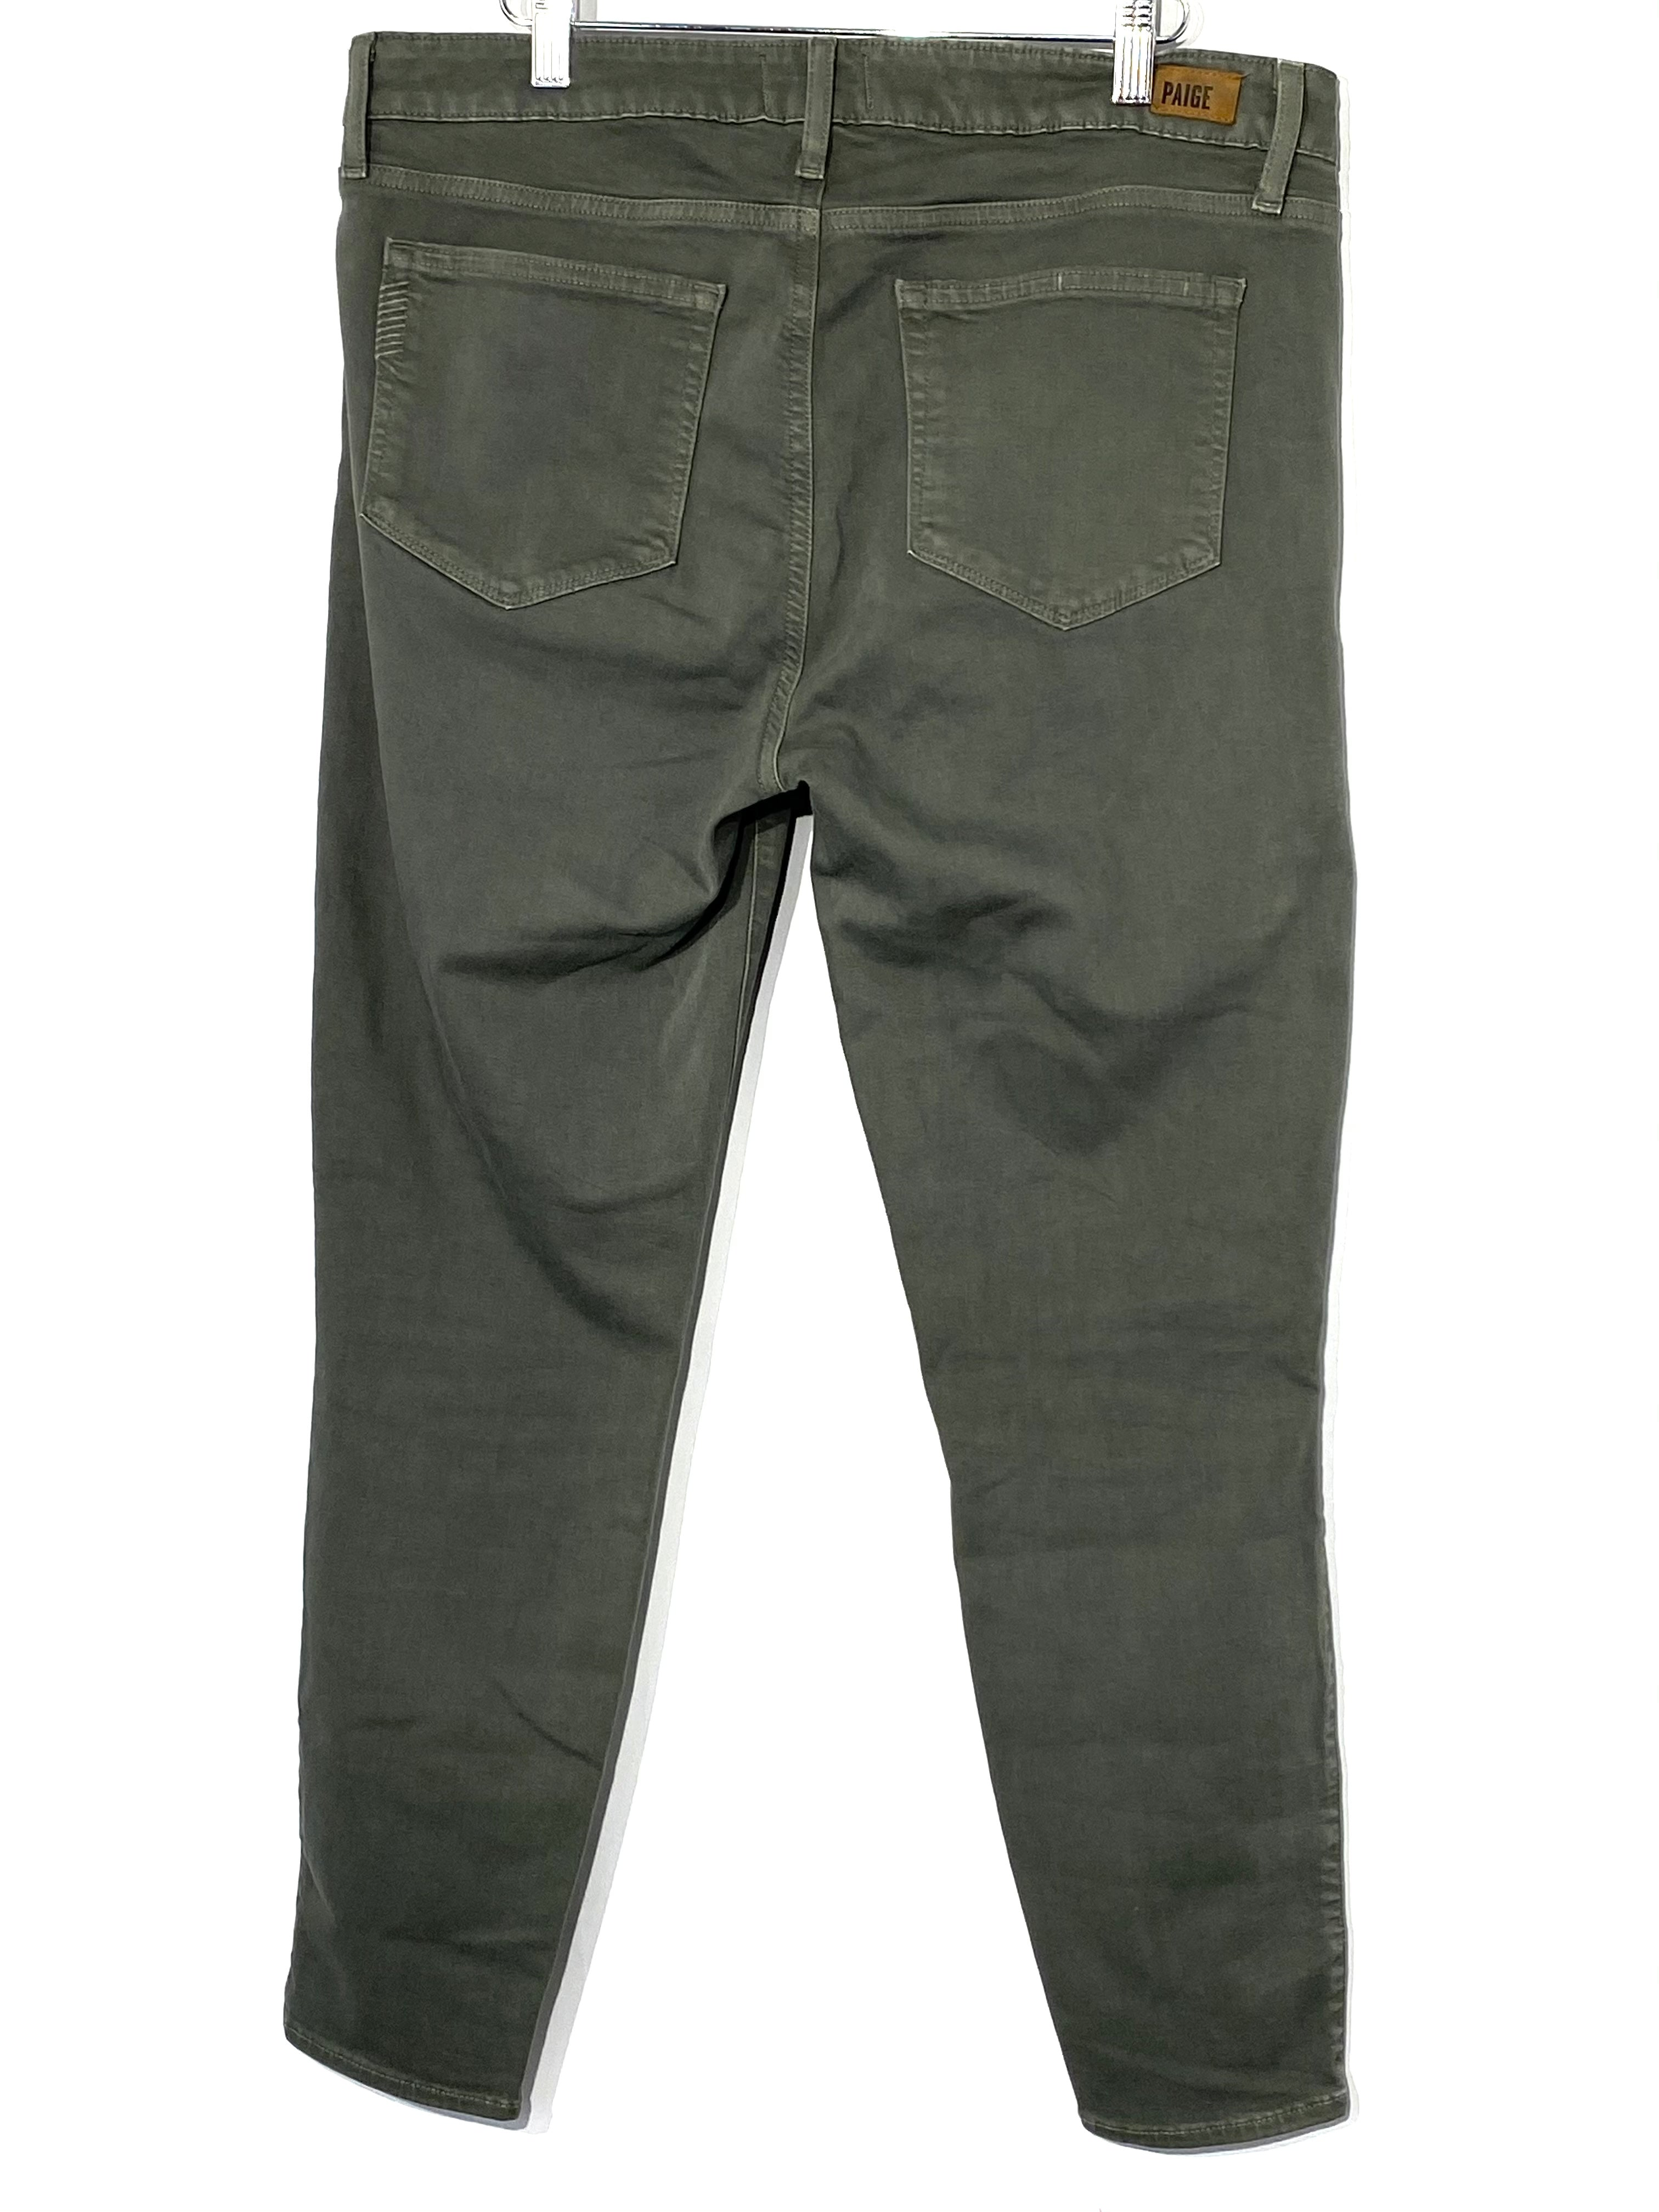 Photo #1 - BRAND: PAIGE <BR>STYLE: JEANS <BR>COLOR: OLIVE <BR>SIZE: 12 /32<BR>SKU: 262-26275-69397<BR>SLIGHTEST FADE EDGES OR DISTRESSED STYLE